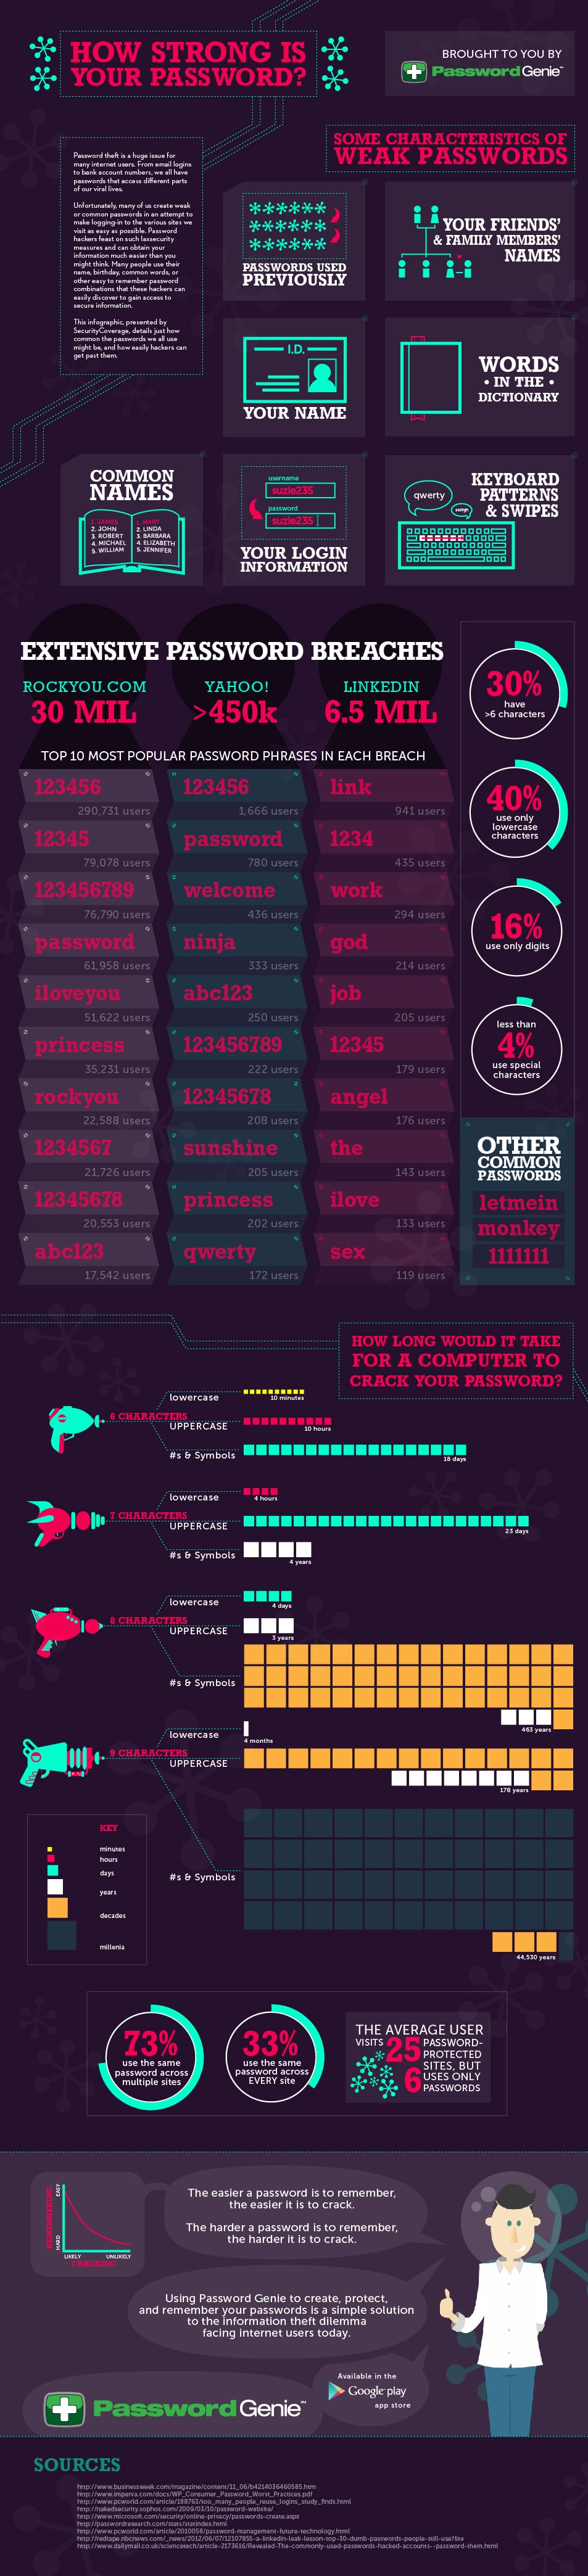 Password Strength: How Strong Is Your Password? [Infographic]